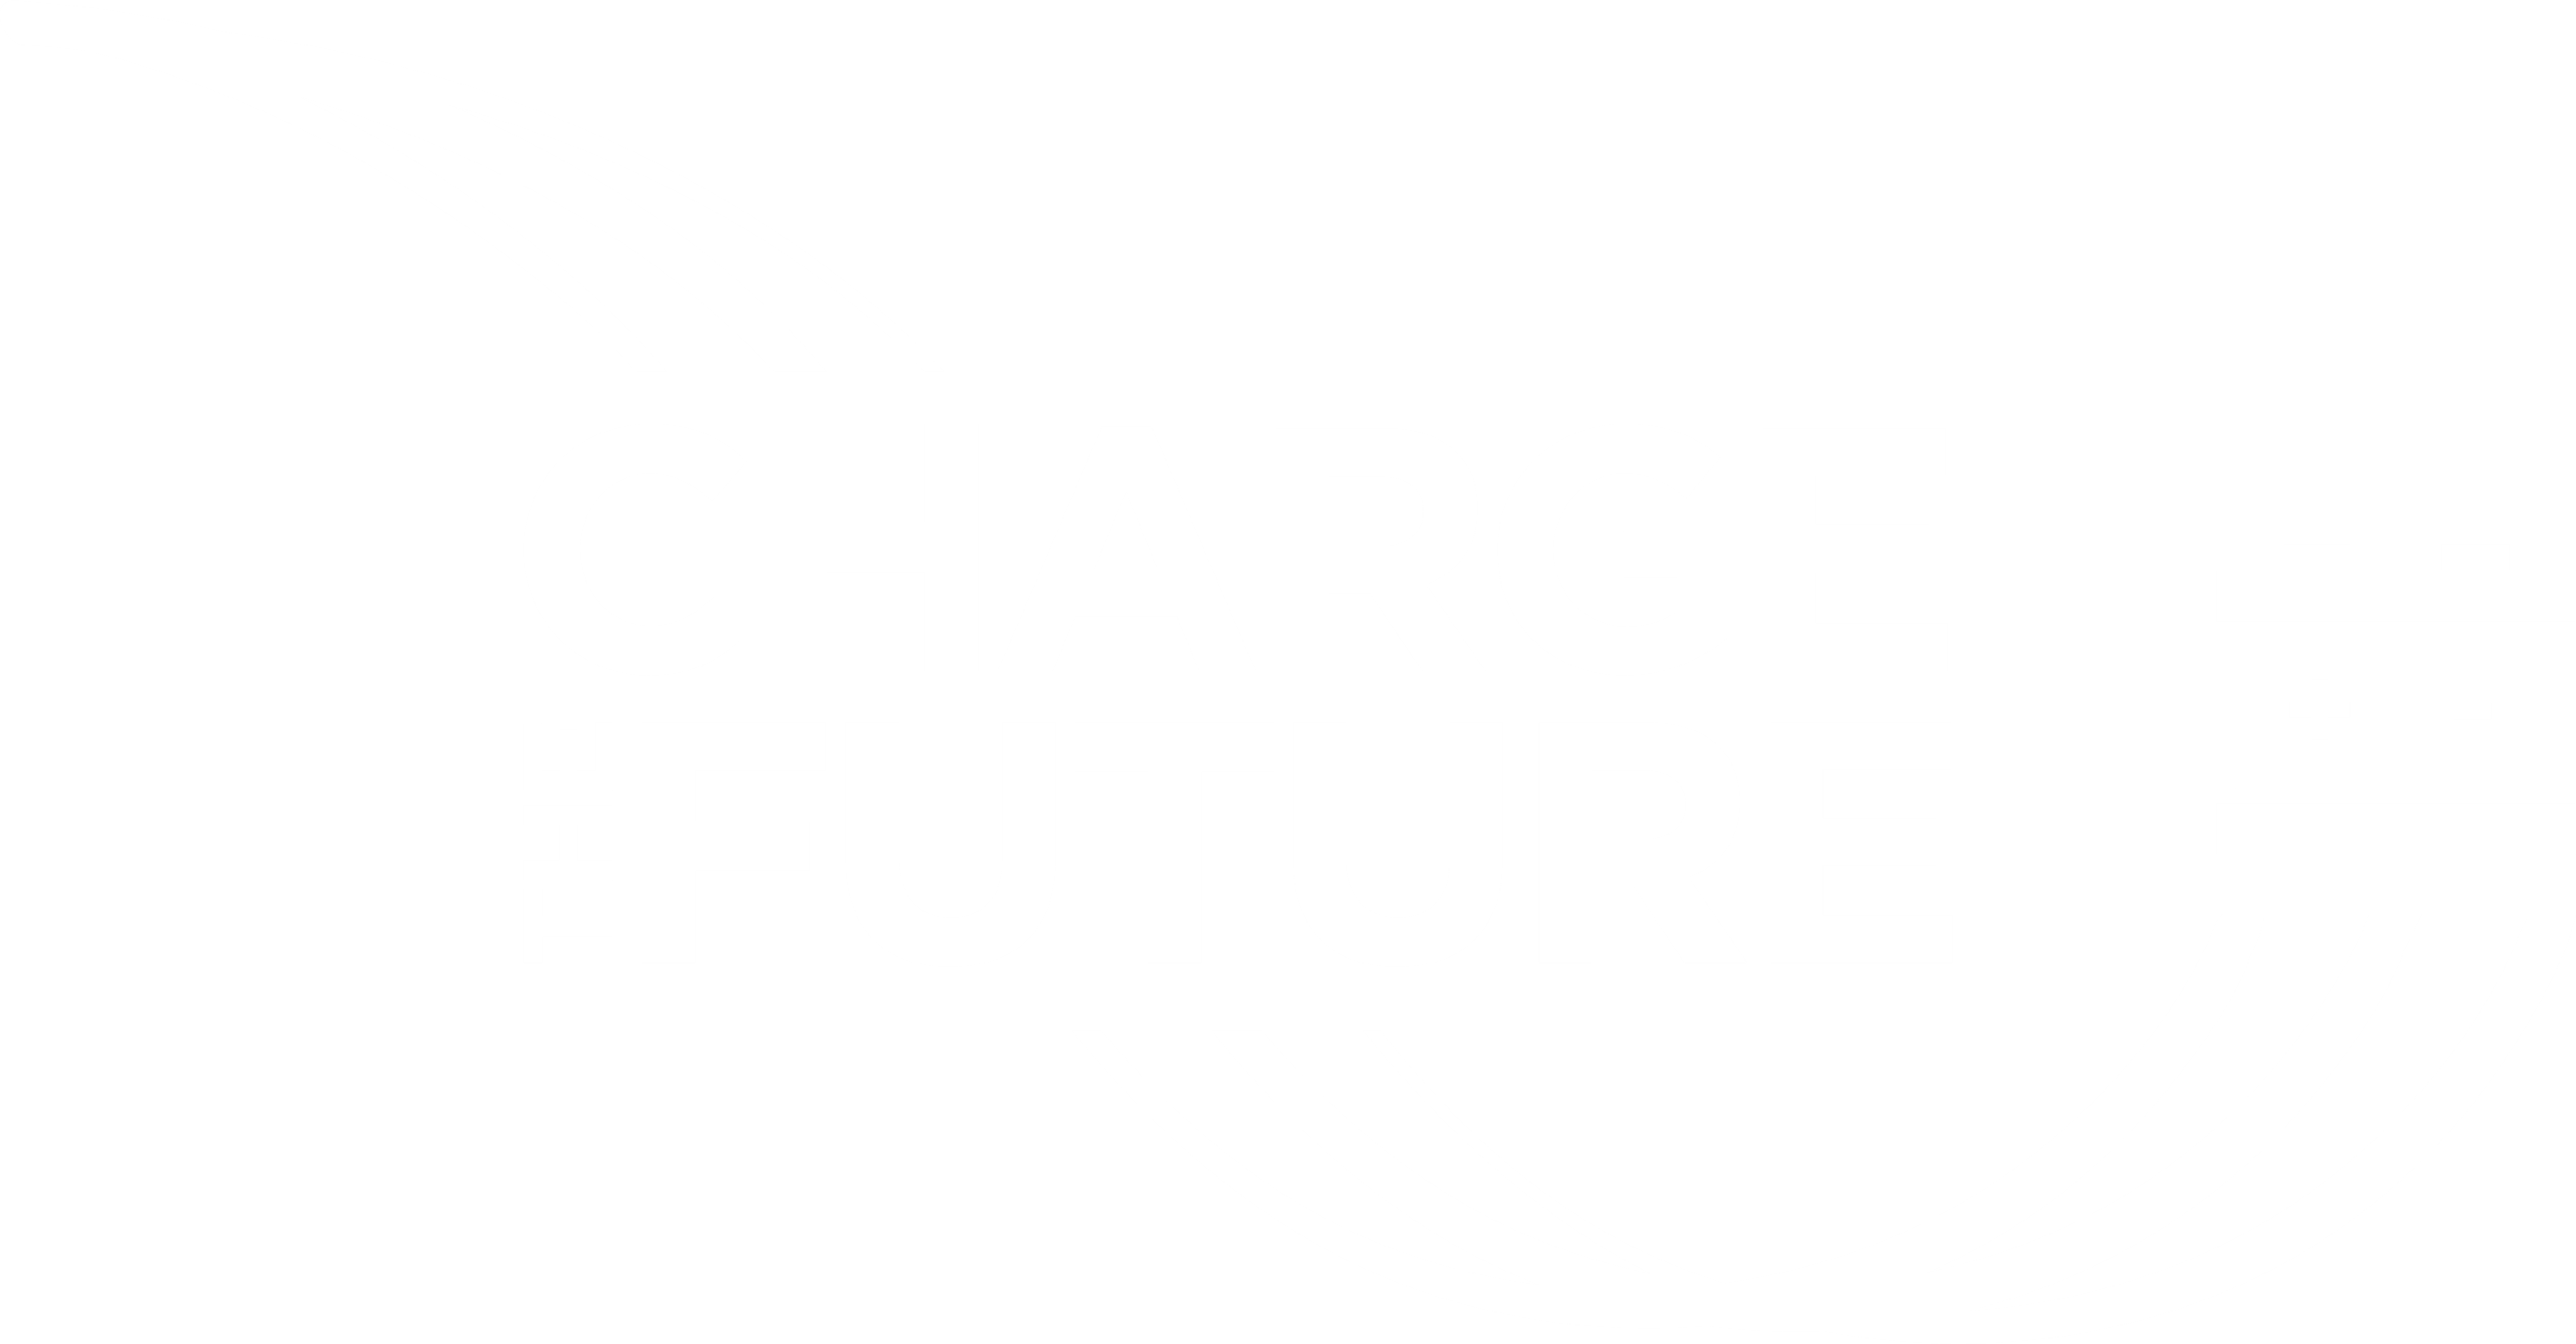 Charge the Future